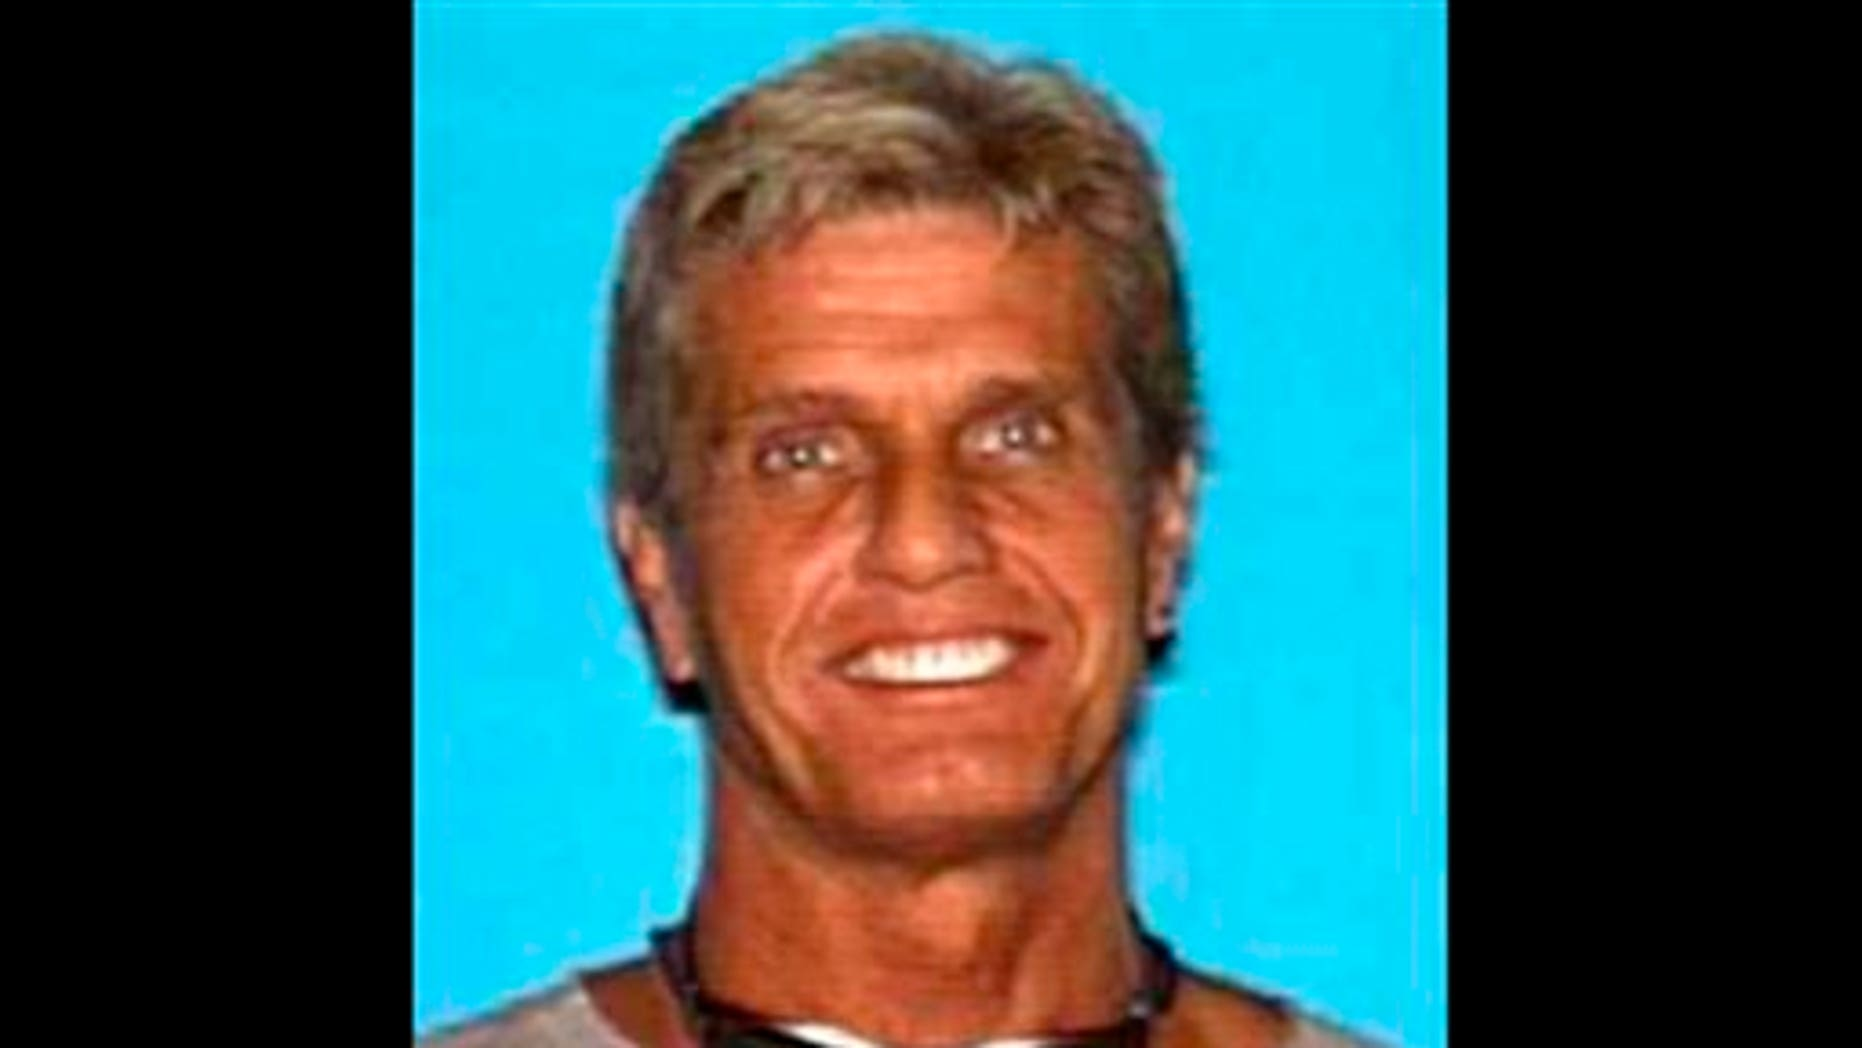 This file photo released by the Los Angeles County Sheriff's Department shows 20th Century Fox executive Gavin Smith.